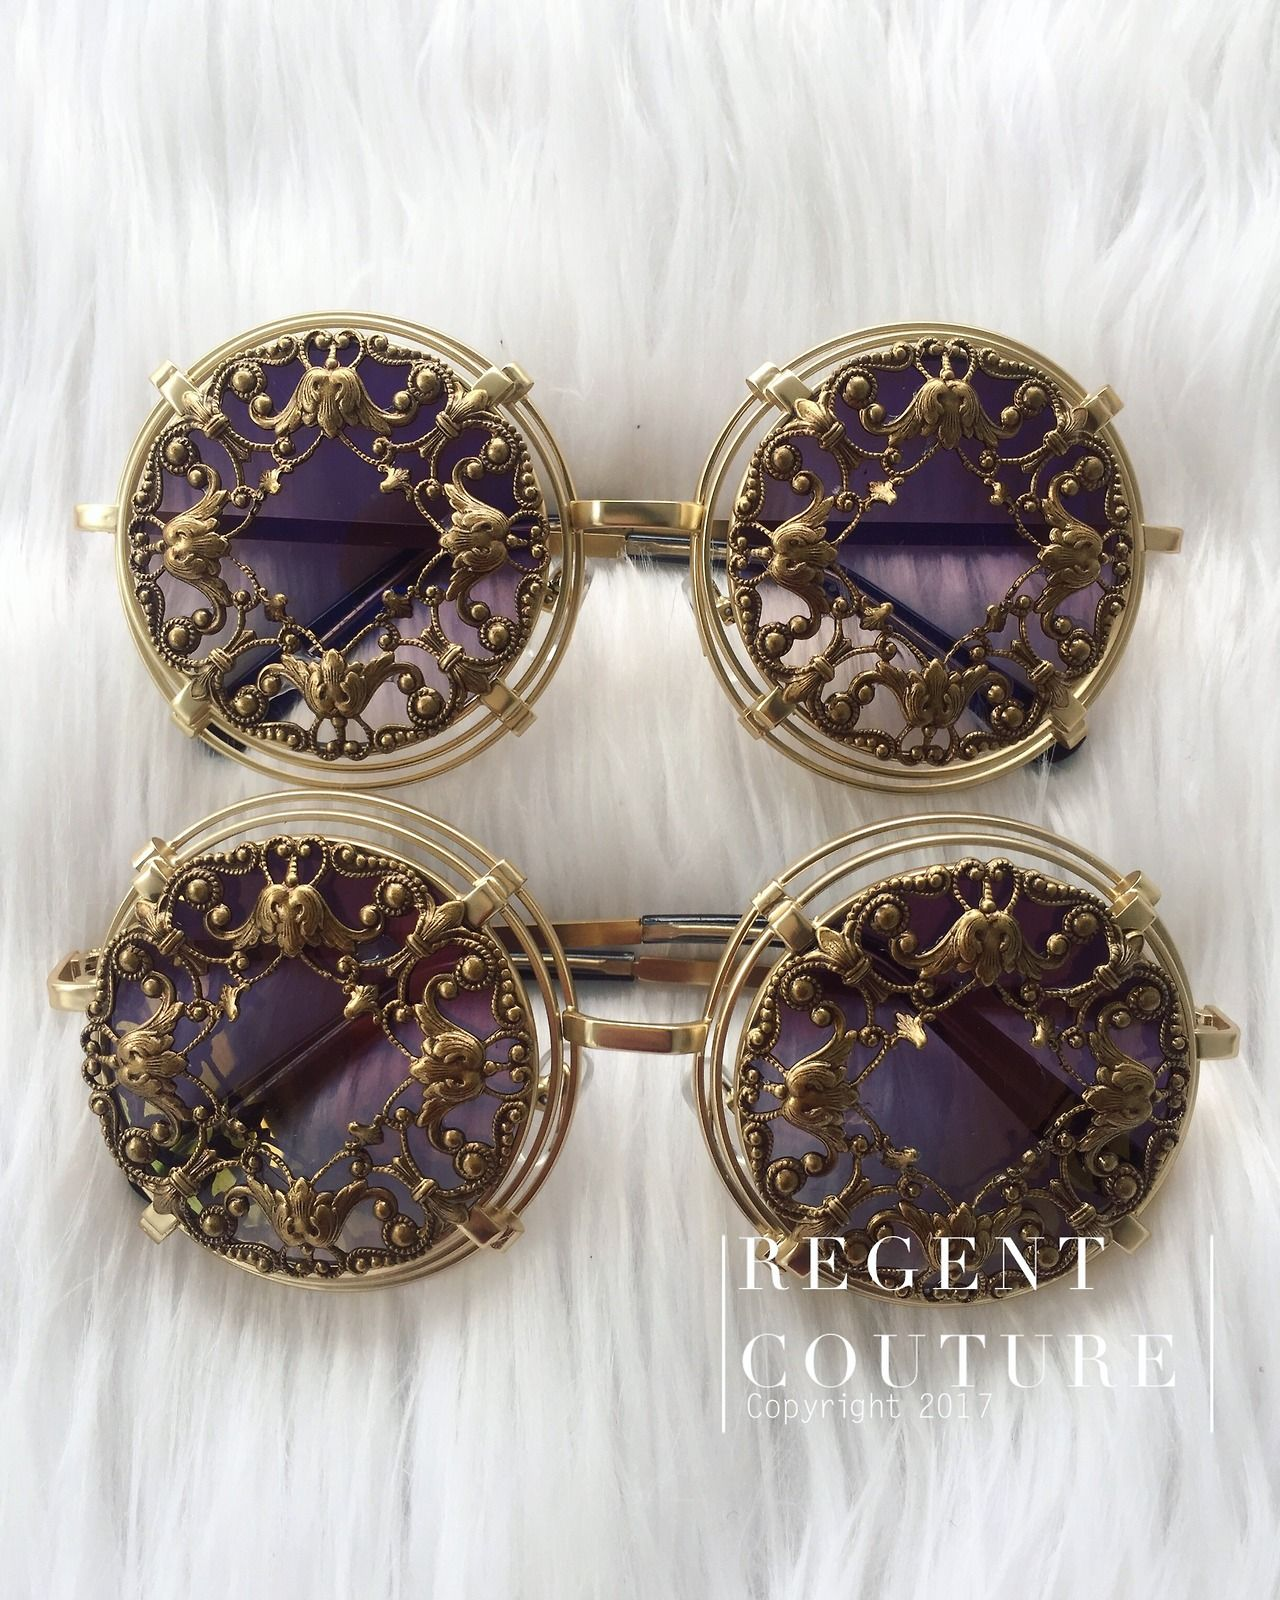 Regent Couture   Steampunk   Pinterest   Sunglasses, Couture and Sunnies 9aa08898f5